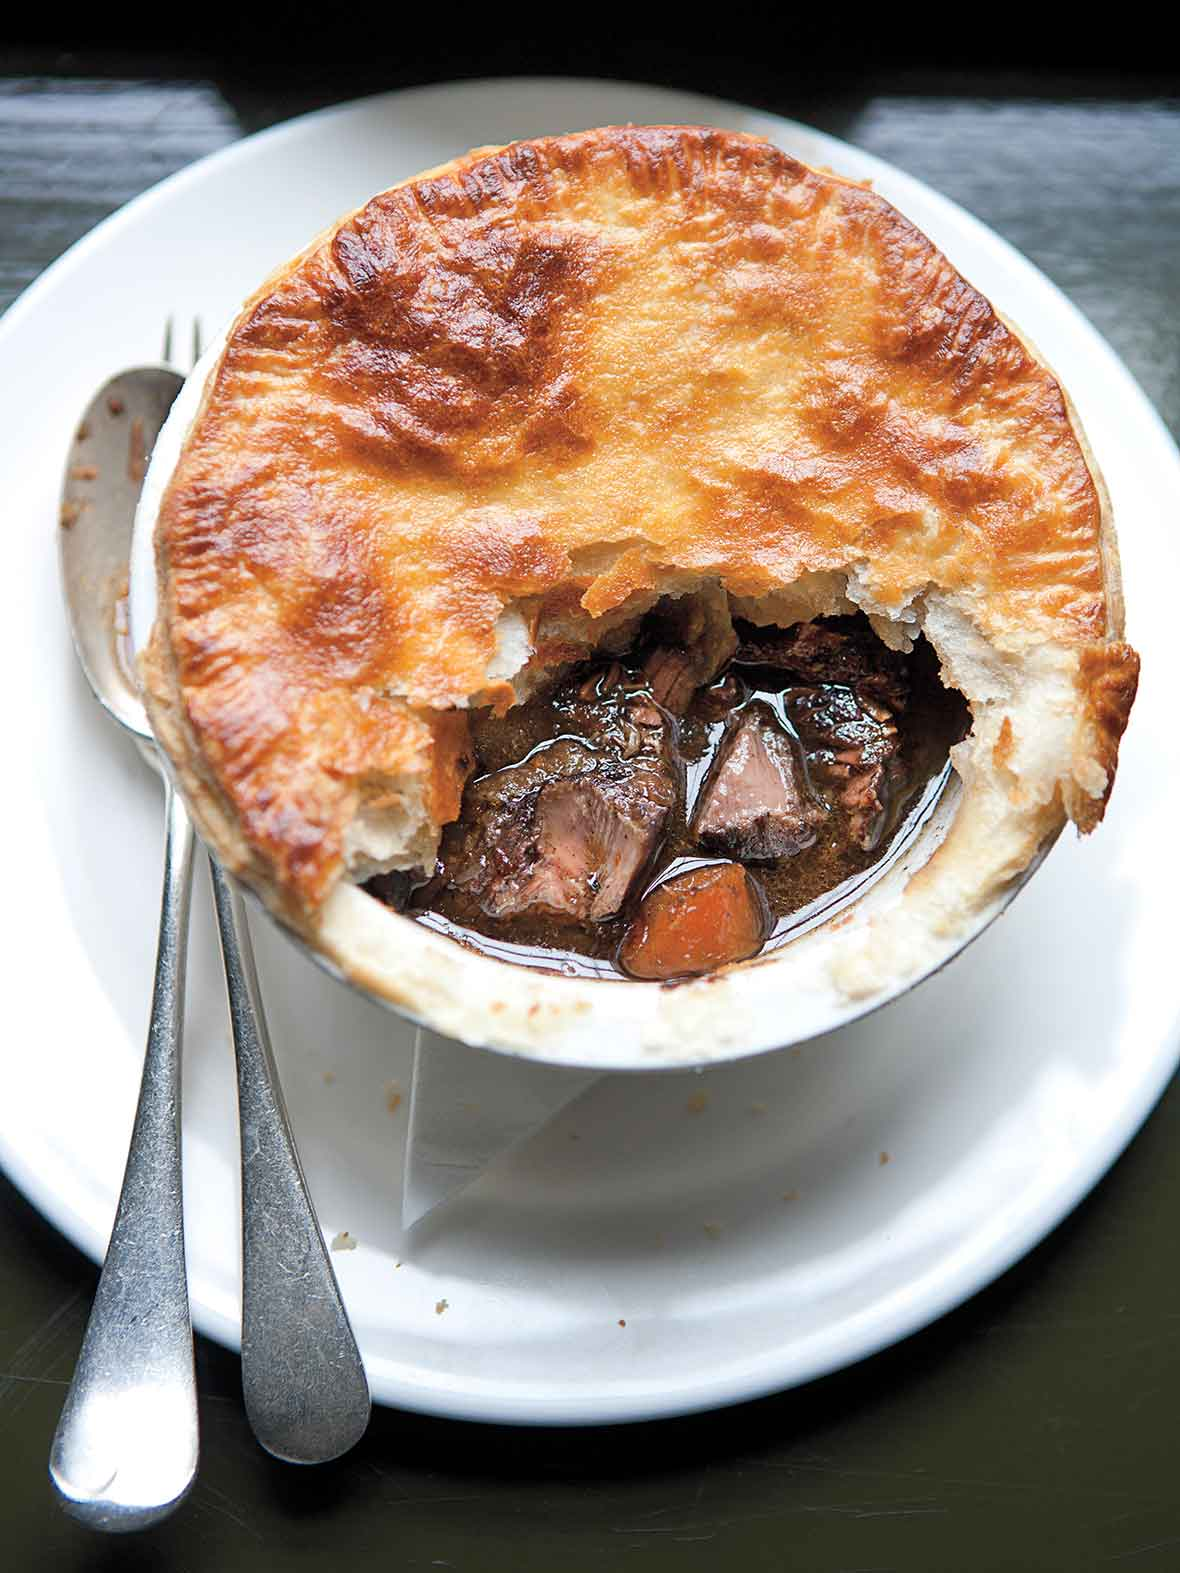 A venison pie with part of the crust missing on a white plate with a fork and spoon beside it.